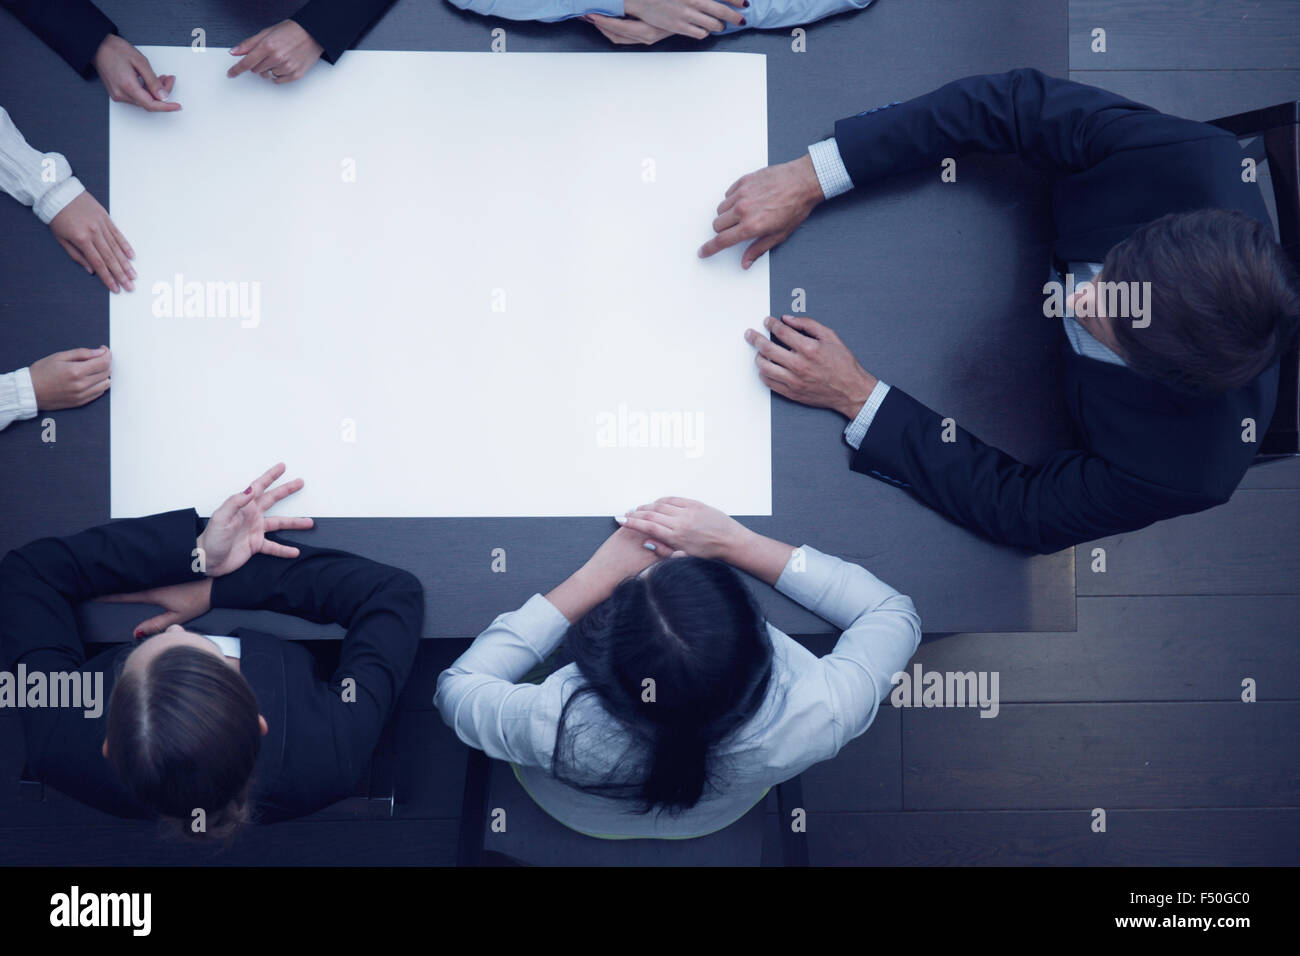 Group of business people with blank paper, new project concept - Stock Image